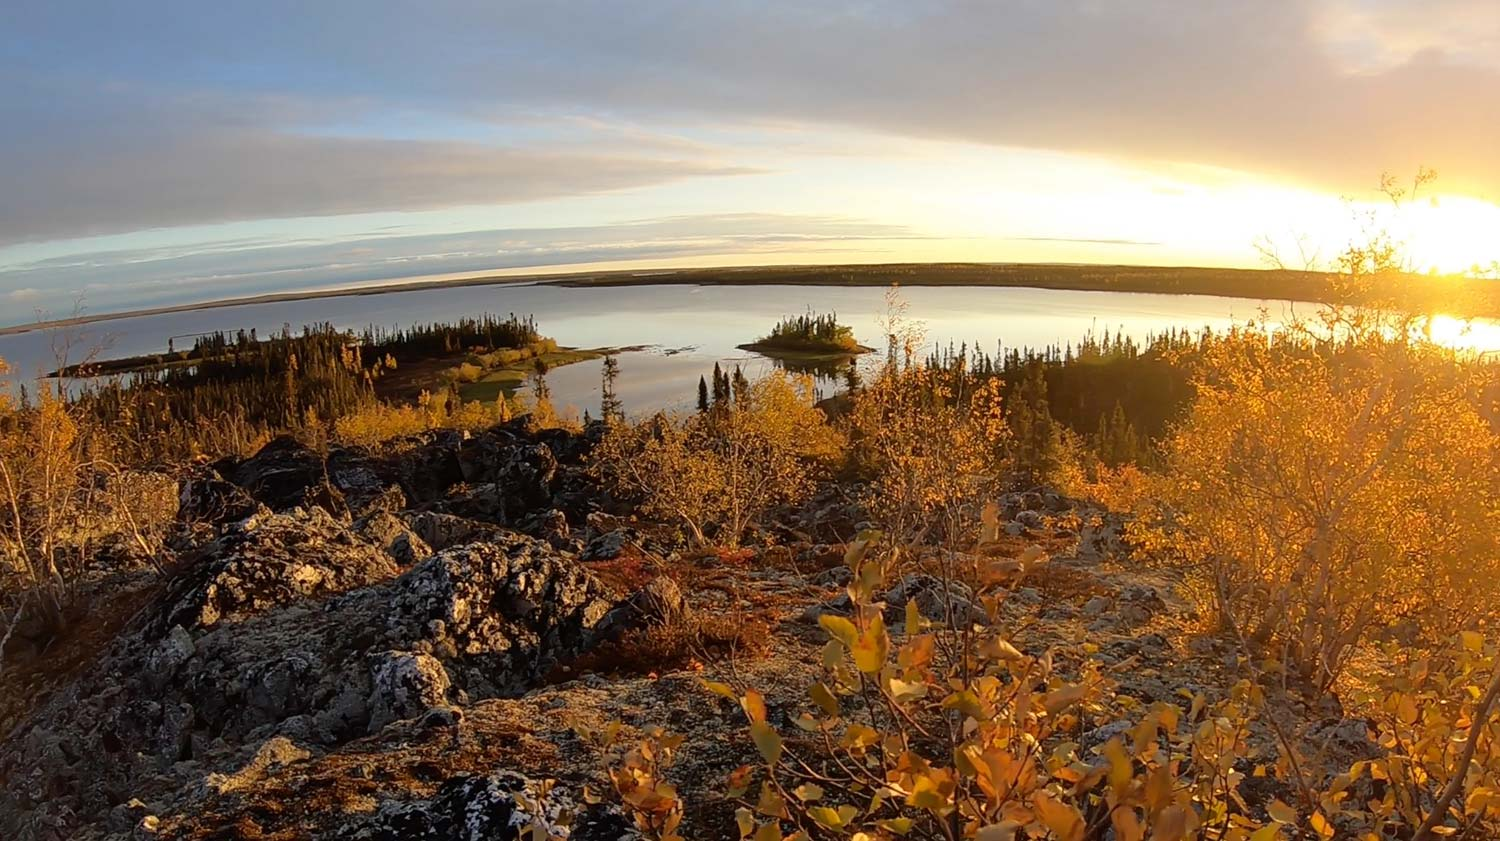 Landscape image with fall colored grass surrounding water and the sun setting on the horizon